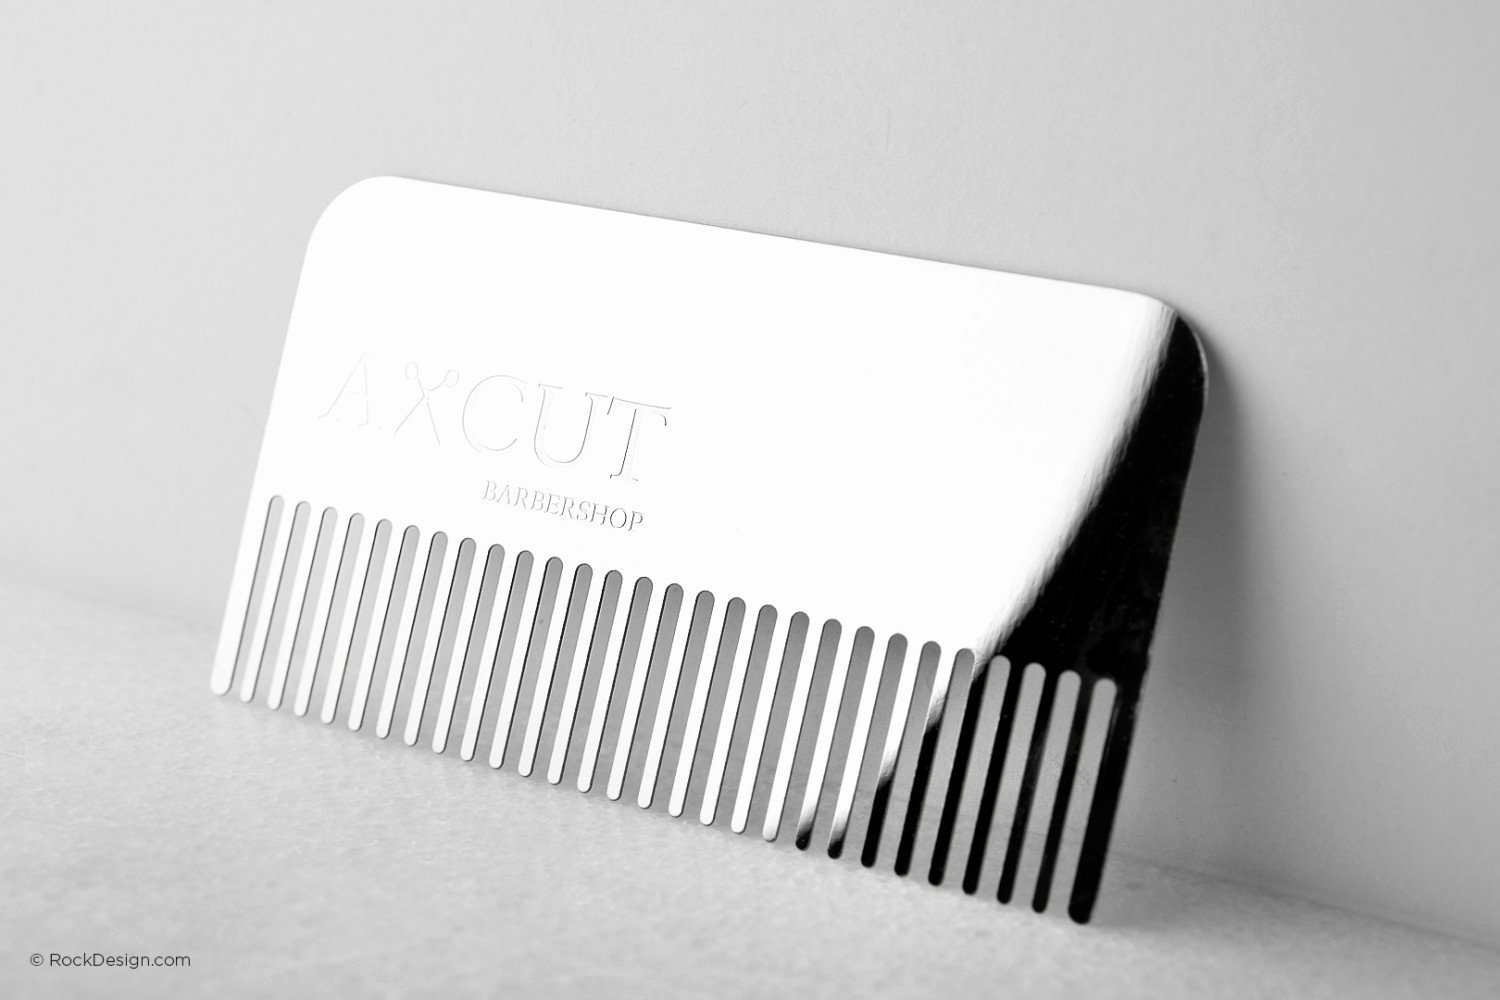 Barber Business Card Template Fresh Free Barber Business Card Template